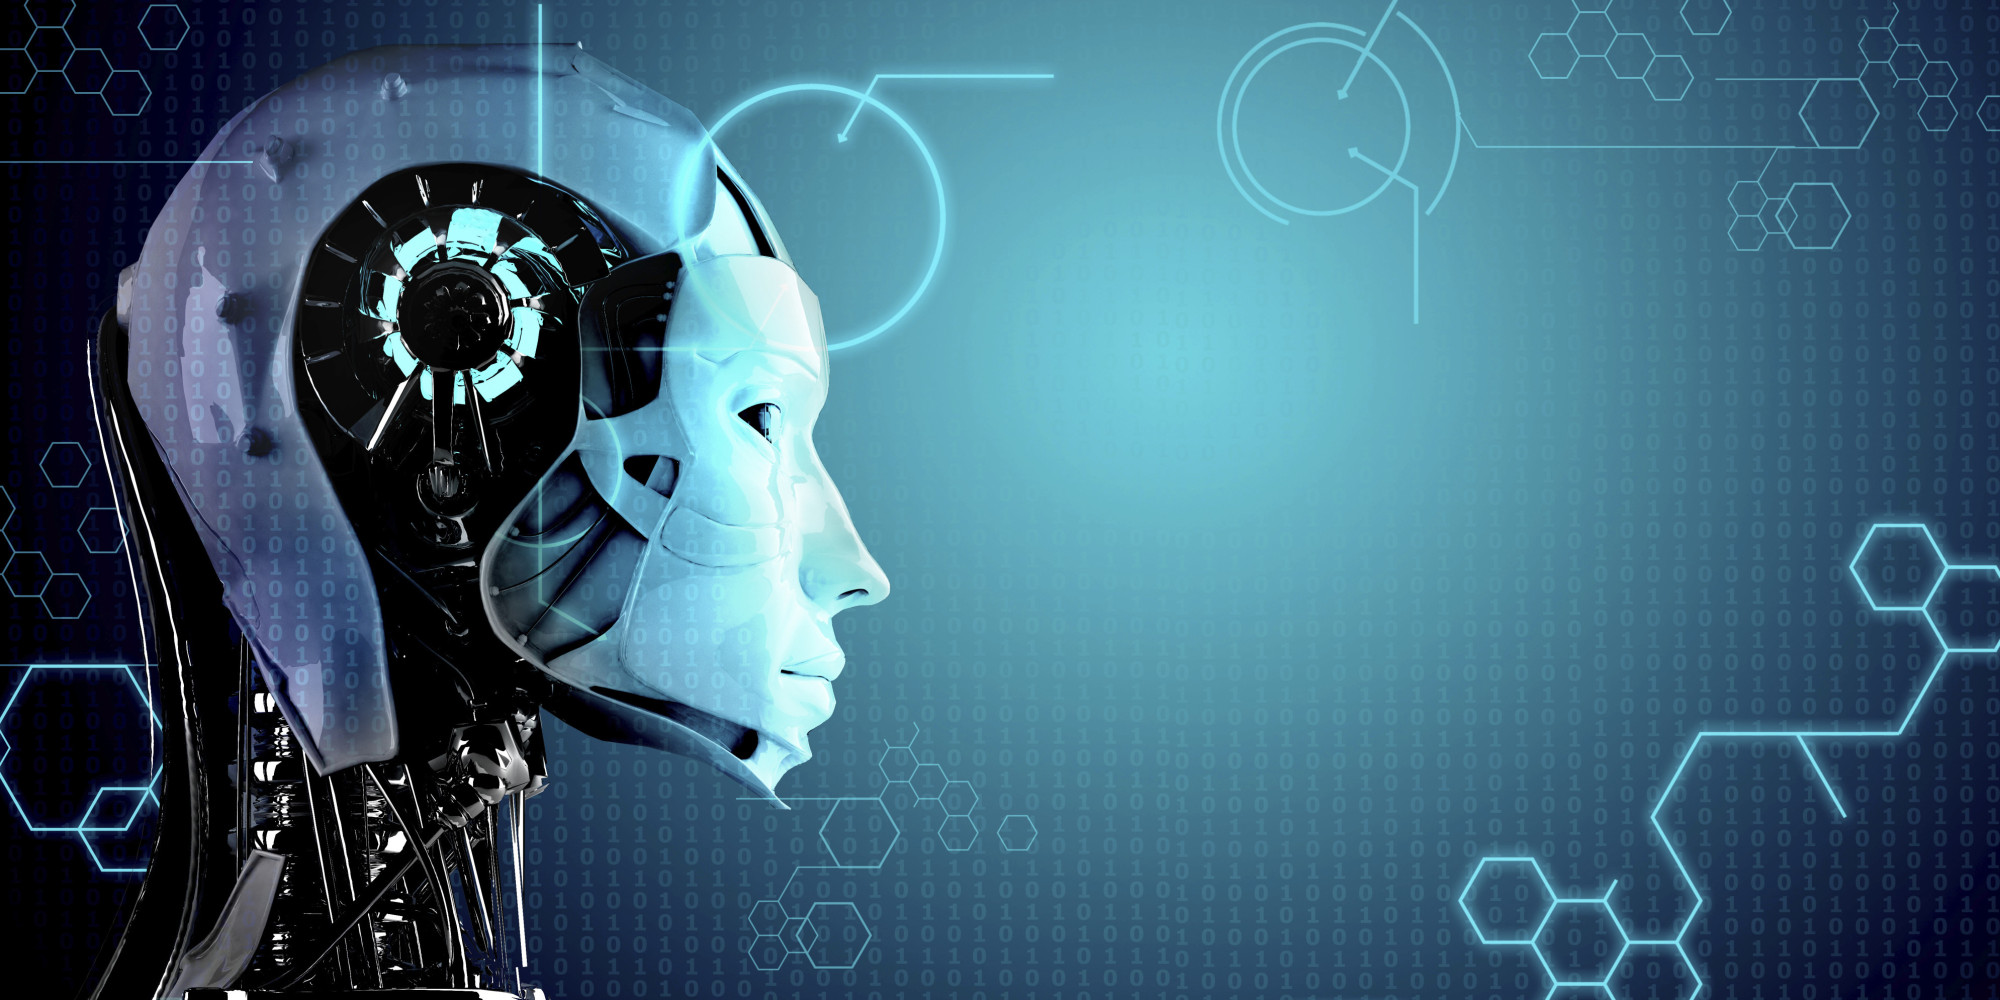 artificial intelligence and video games essay